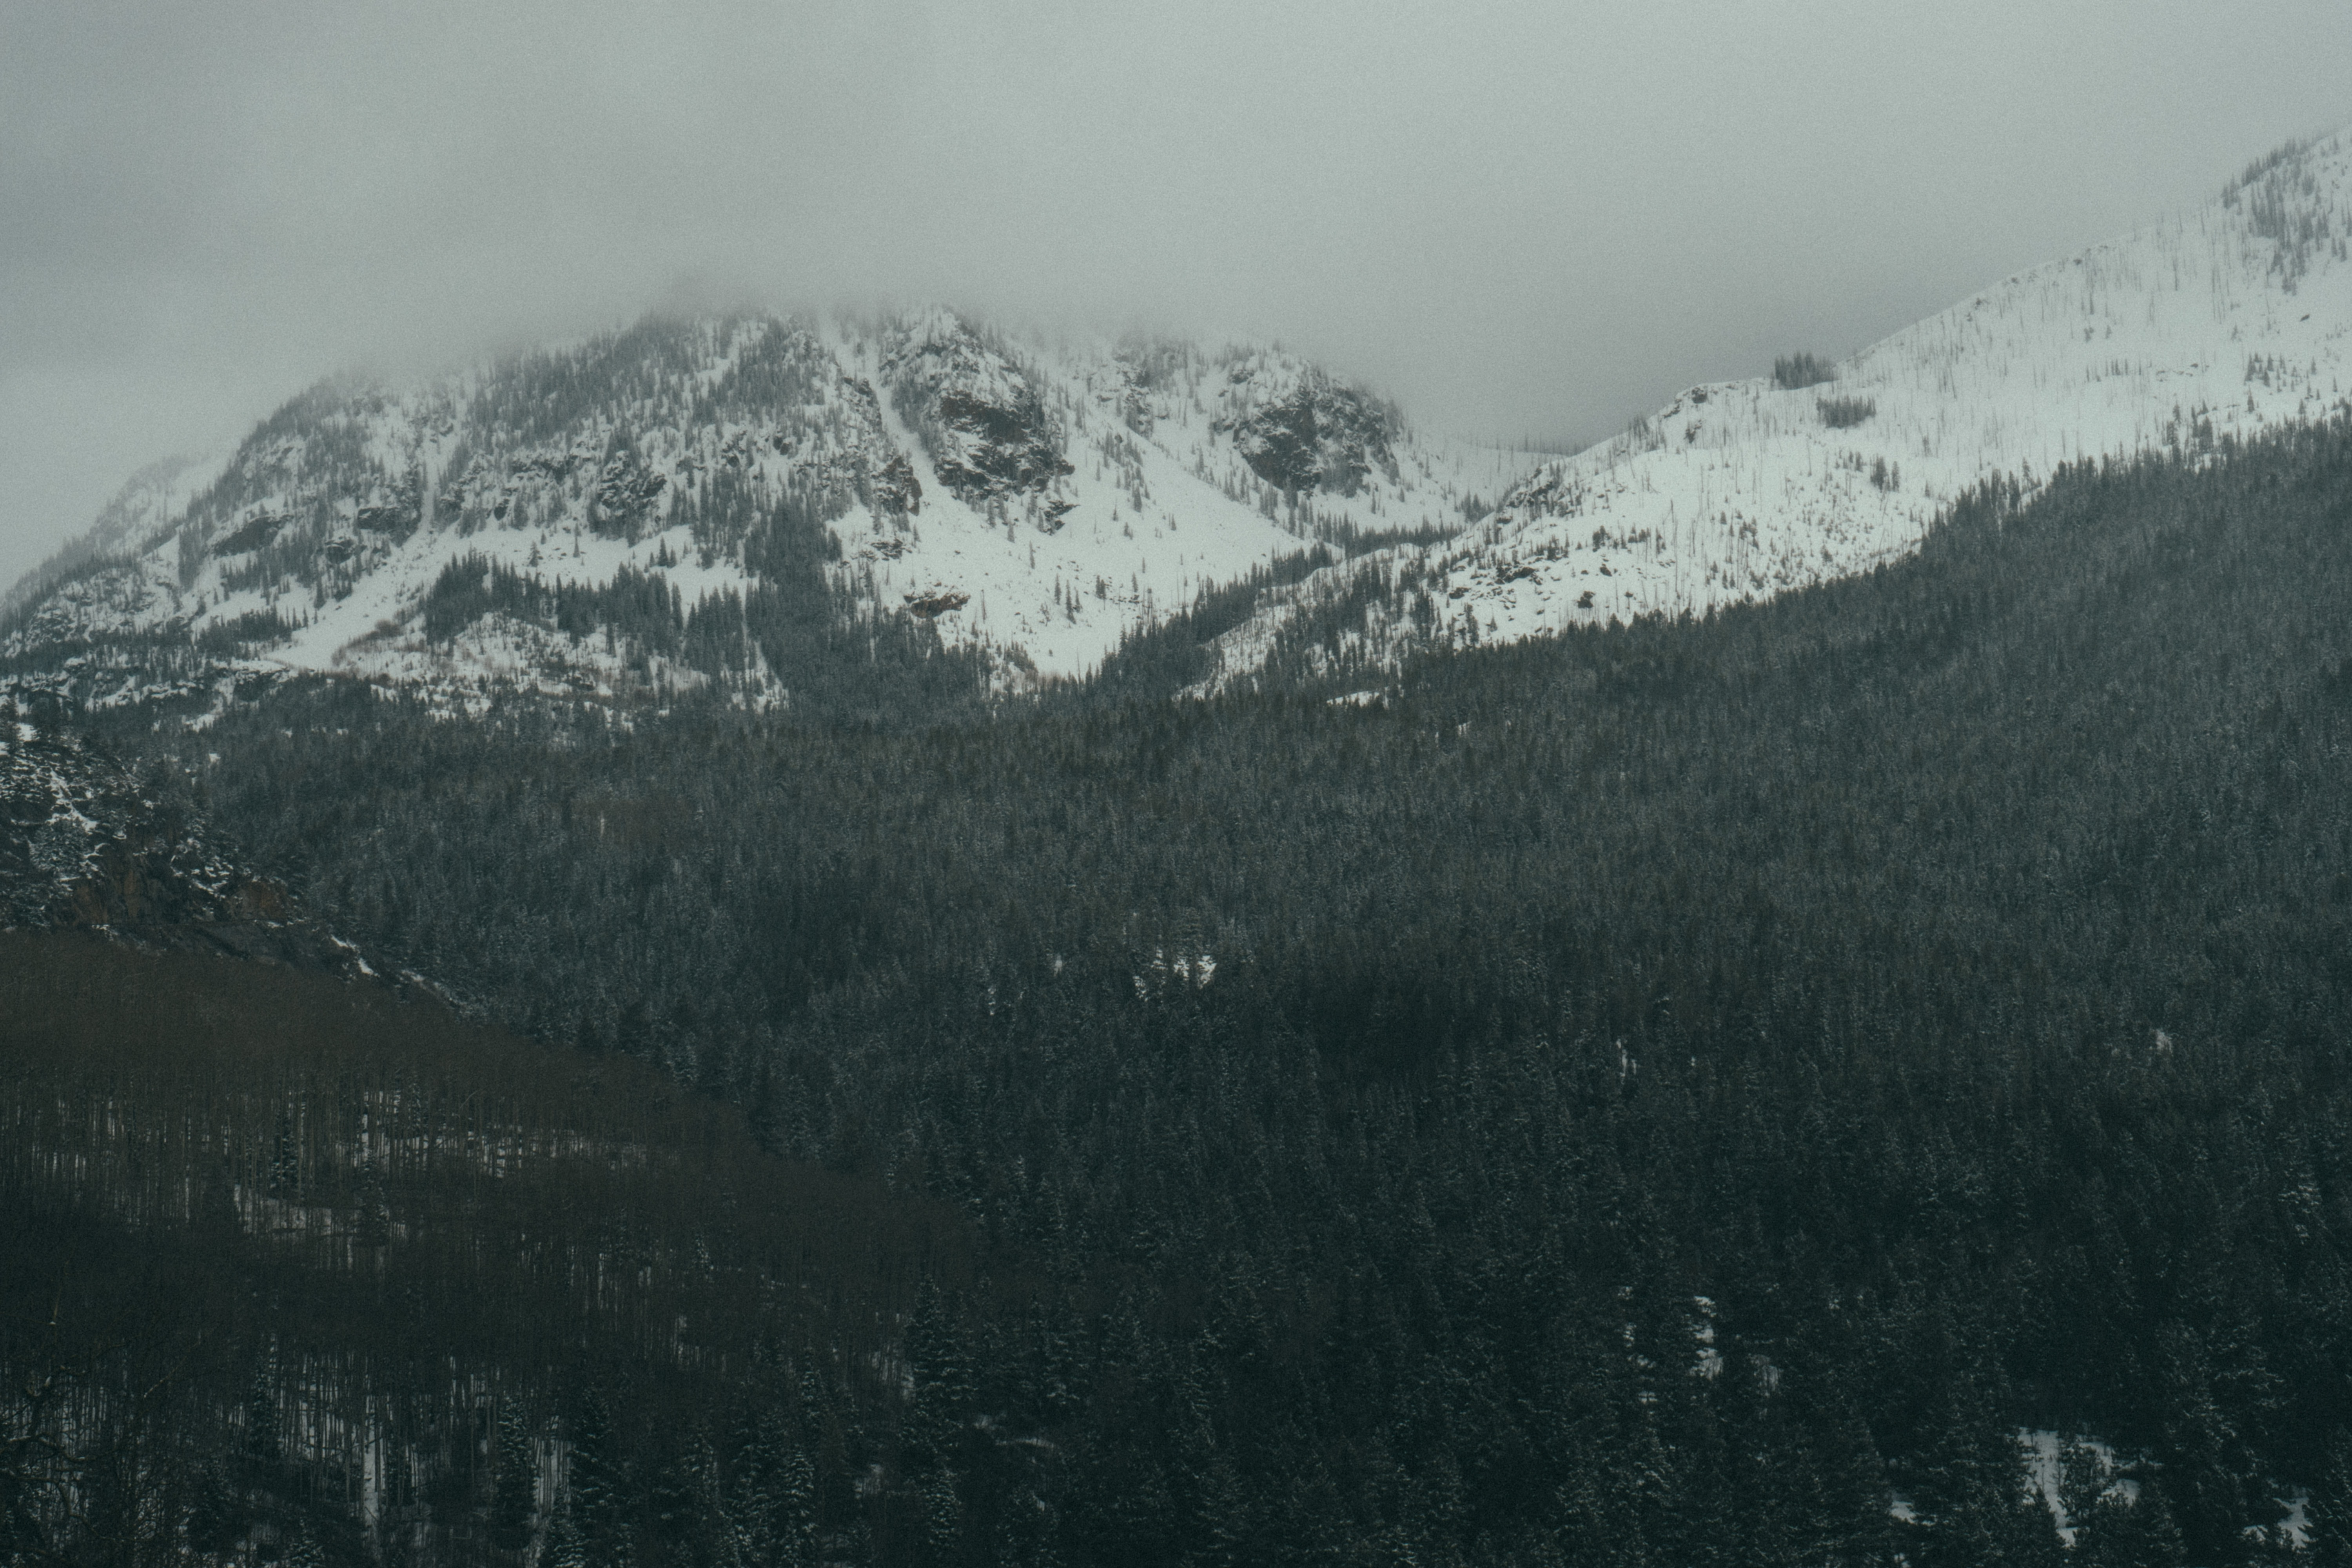 Trees on a hill in Aspen and a snowcapped mountain with the peak covered in fog